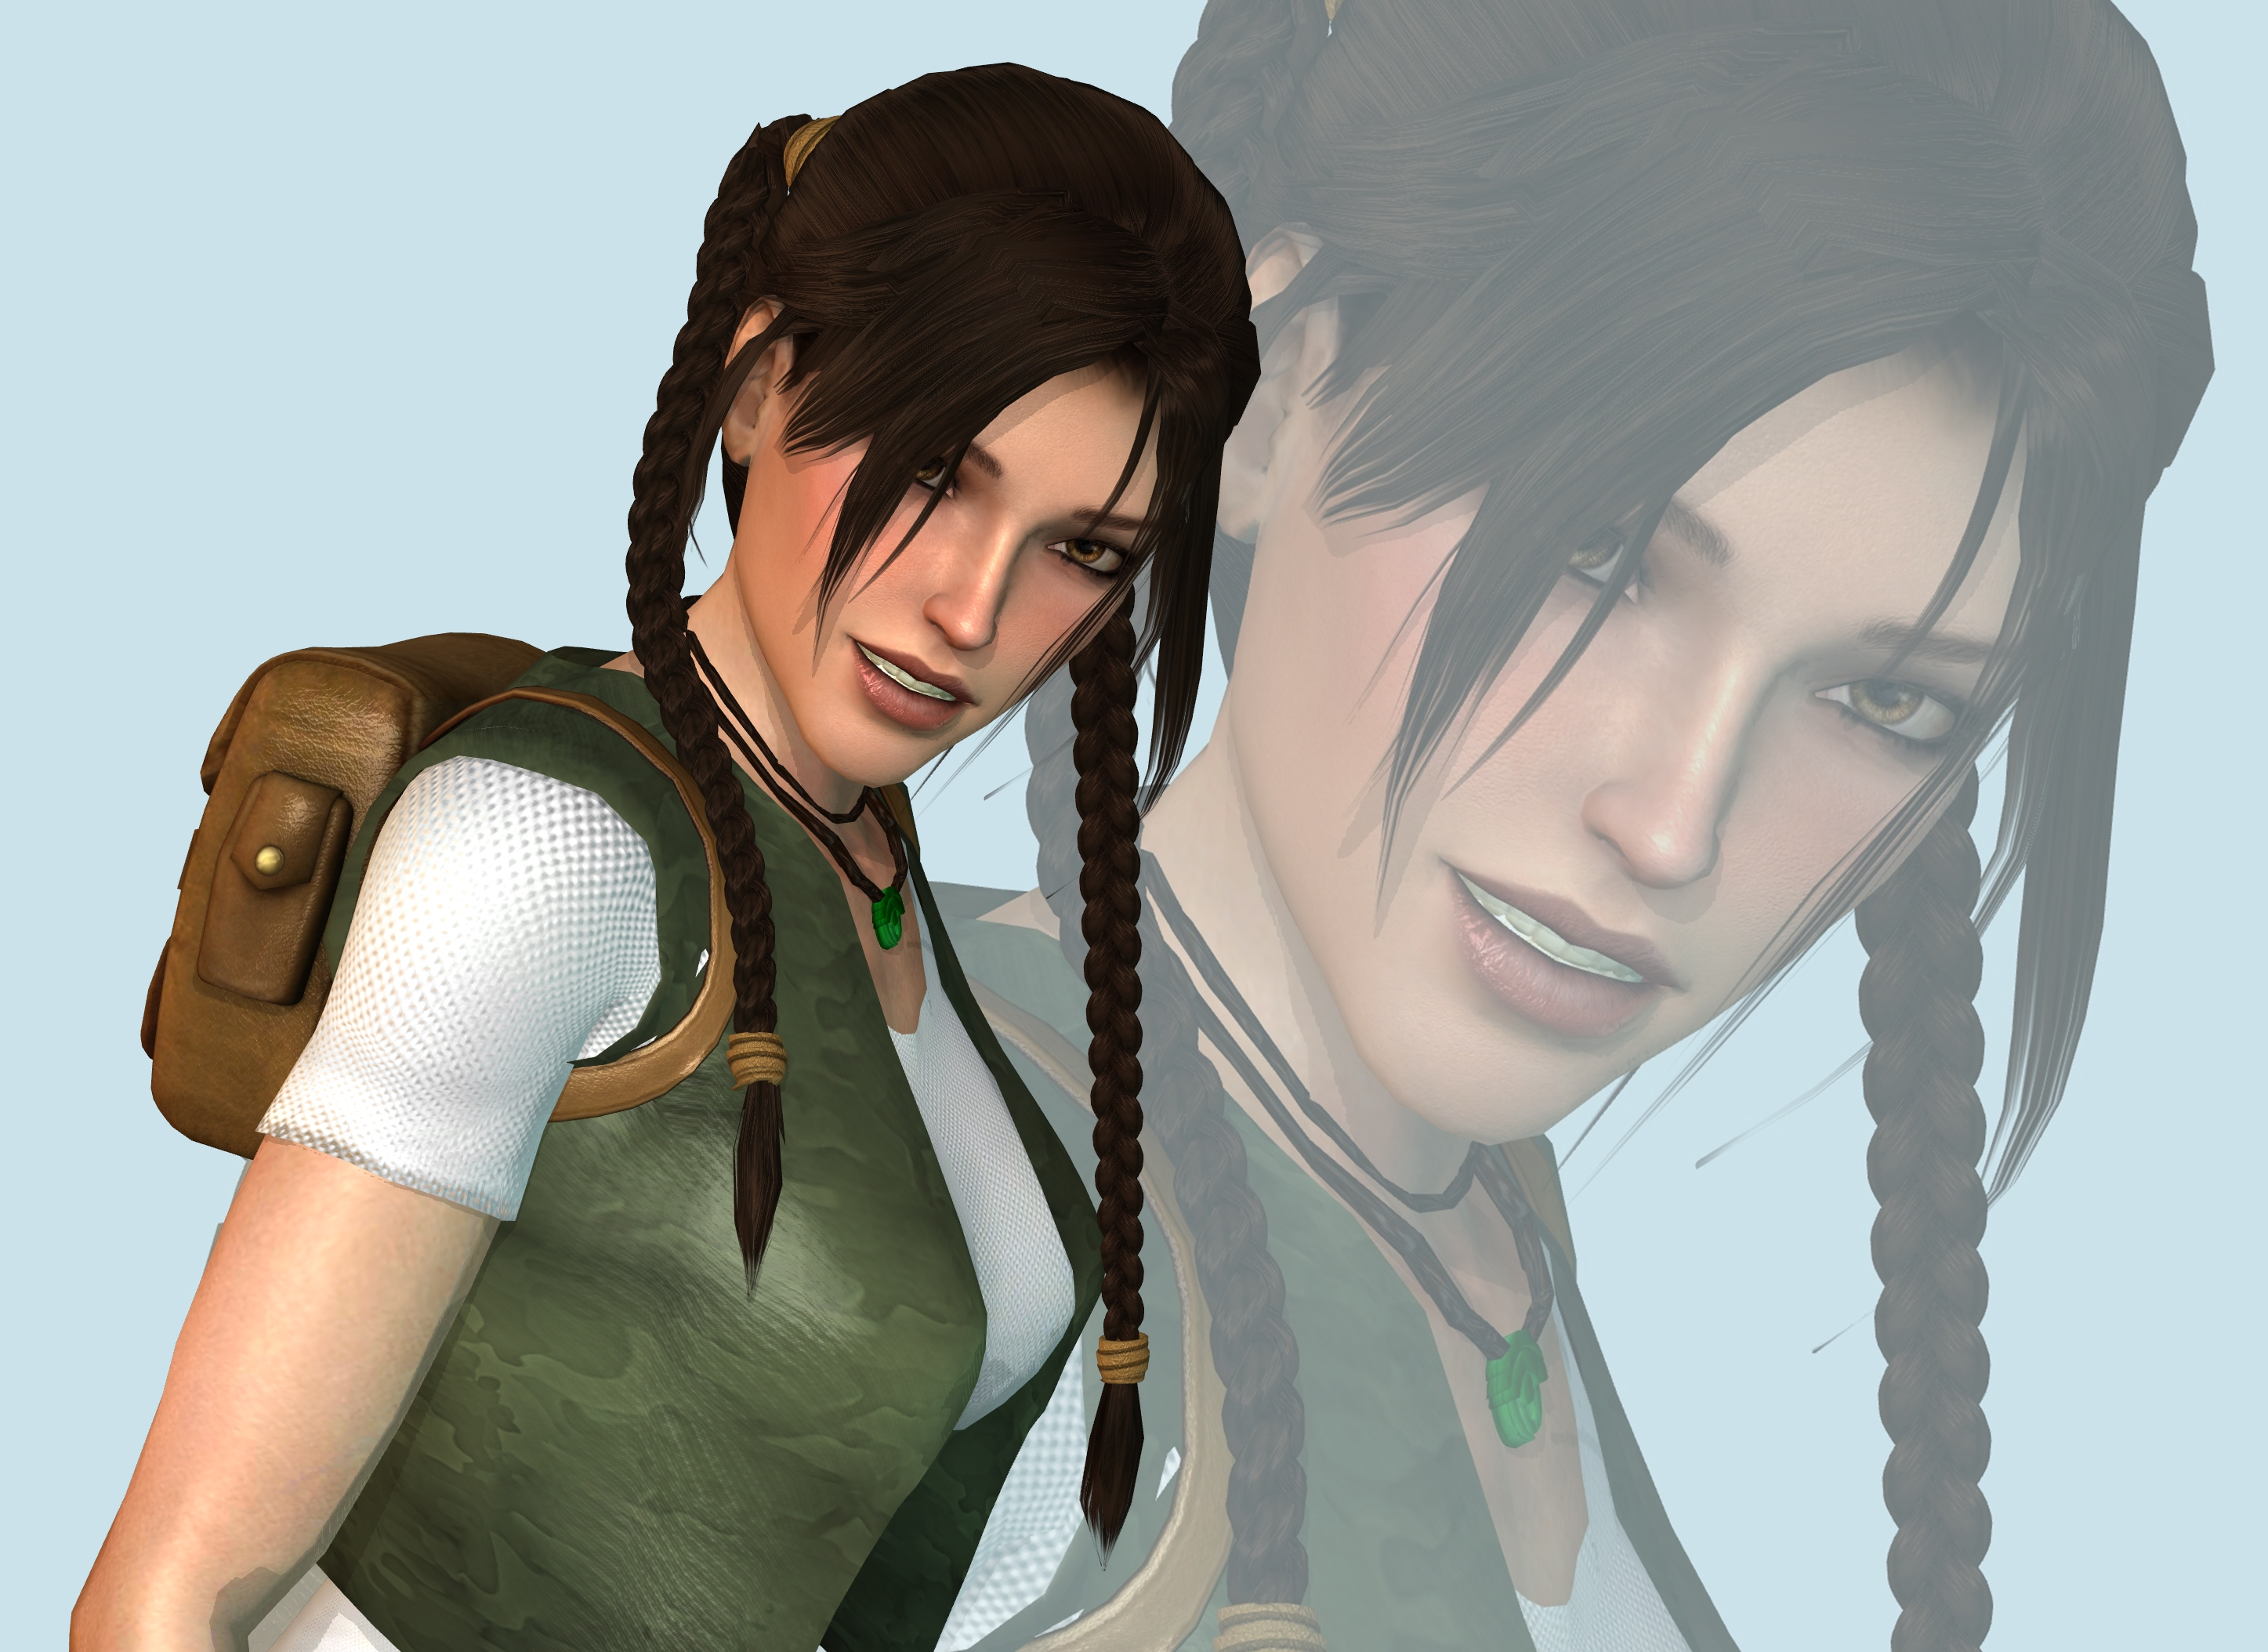 Young Lara Download Xps By Pedro Croft On Deviantart